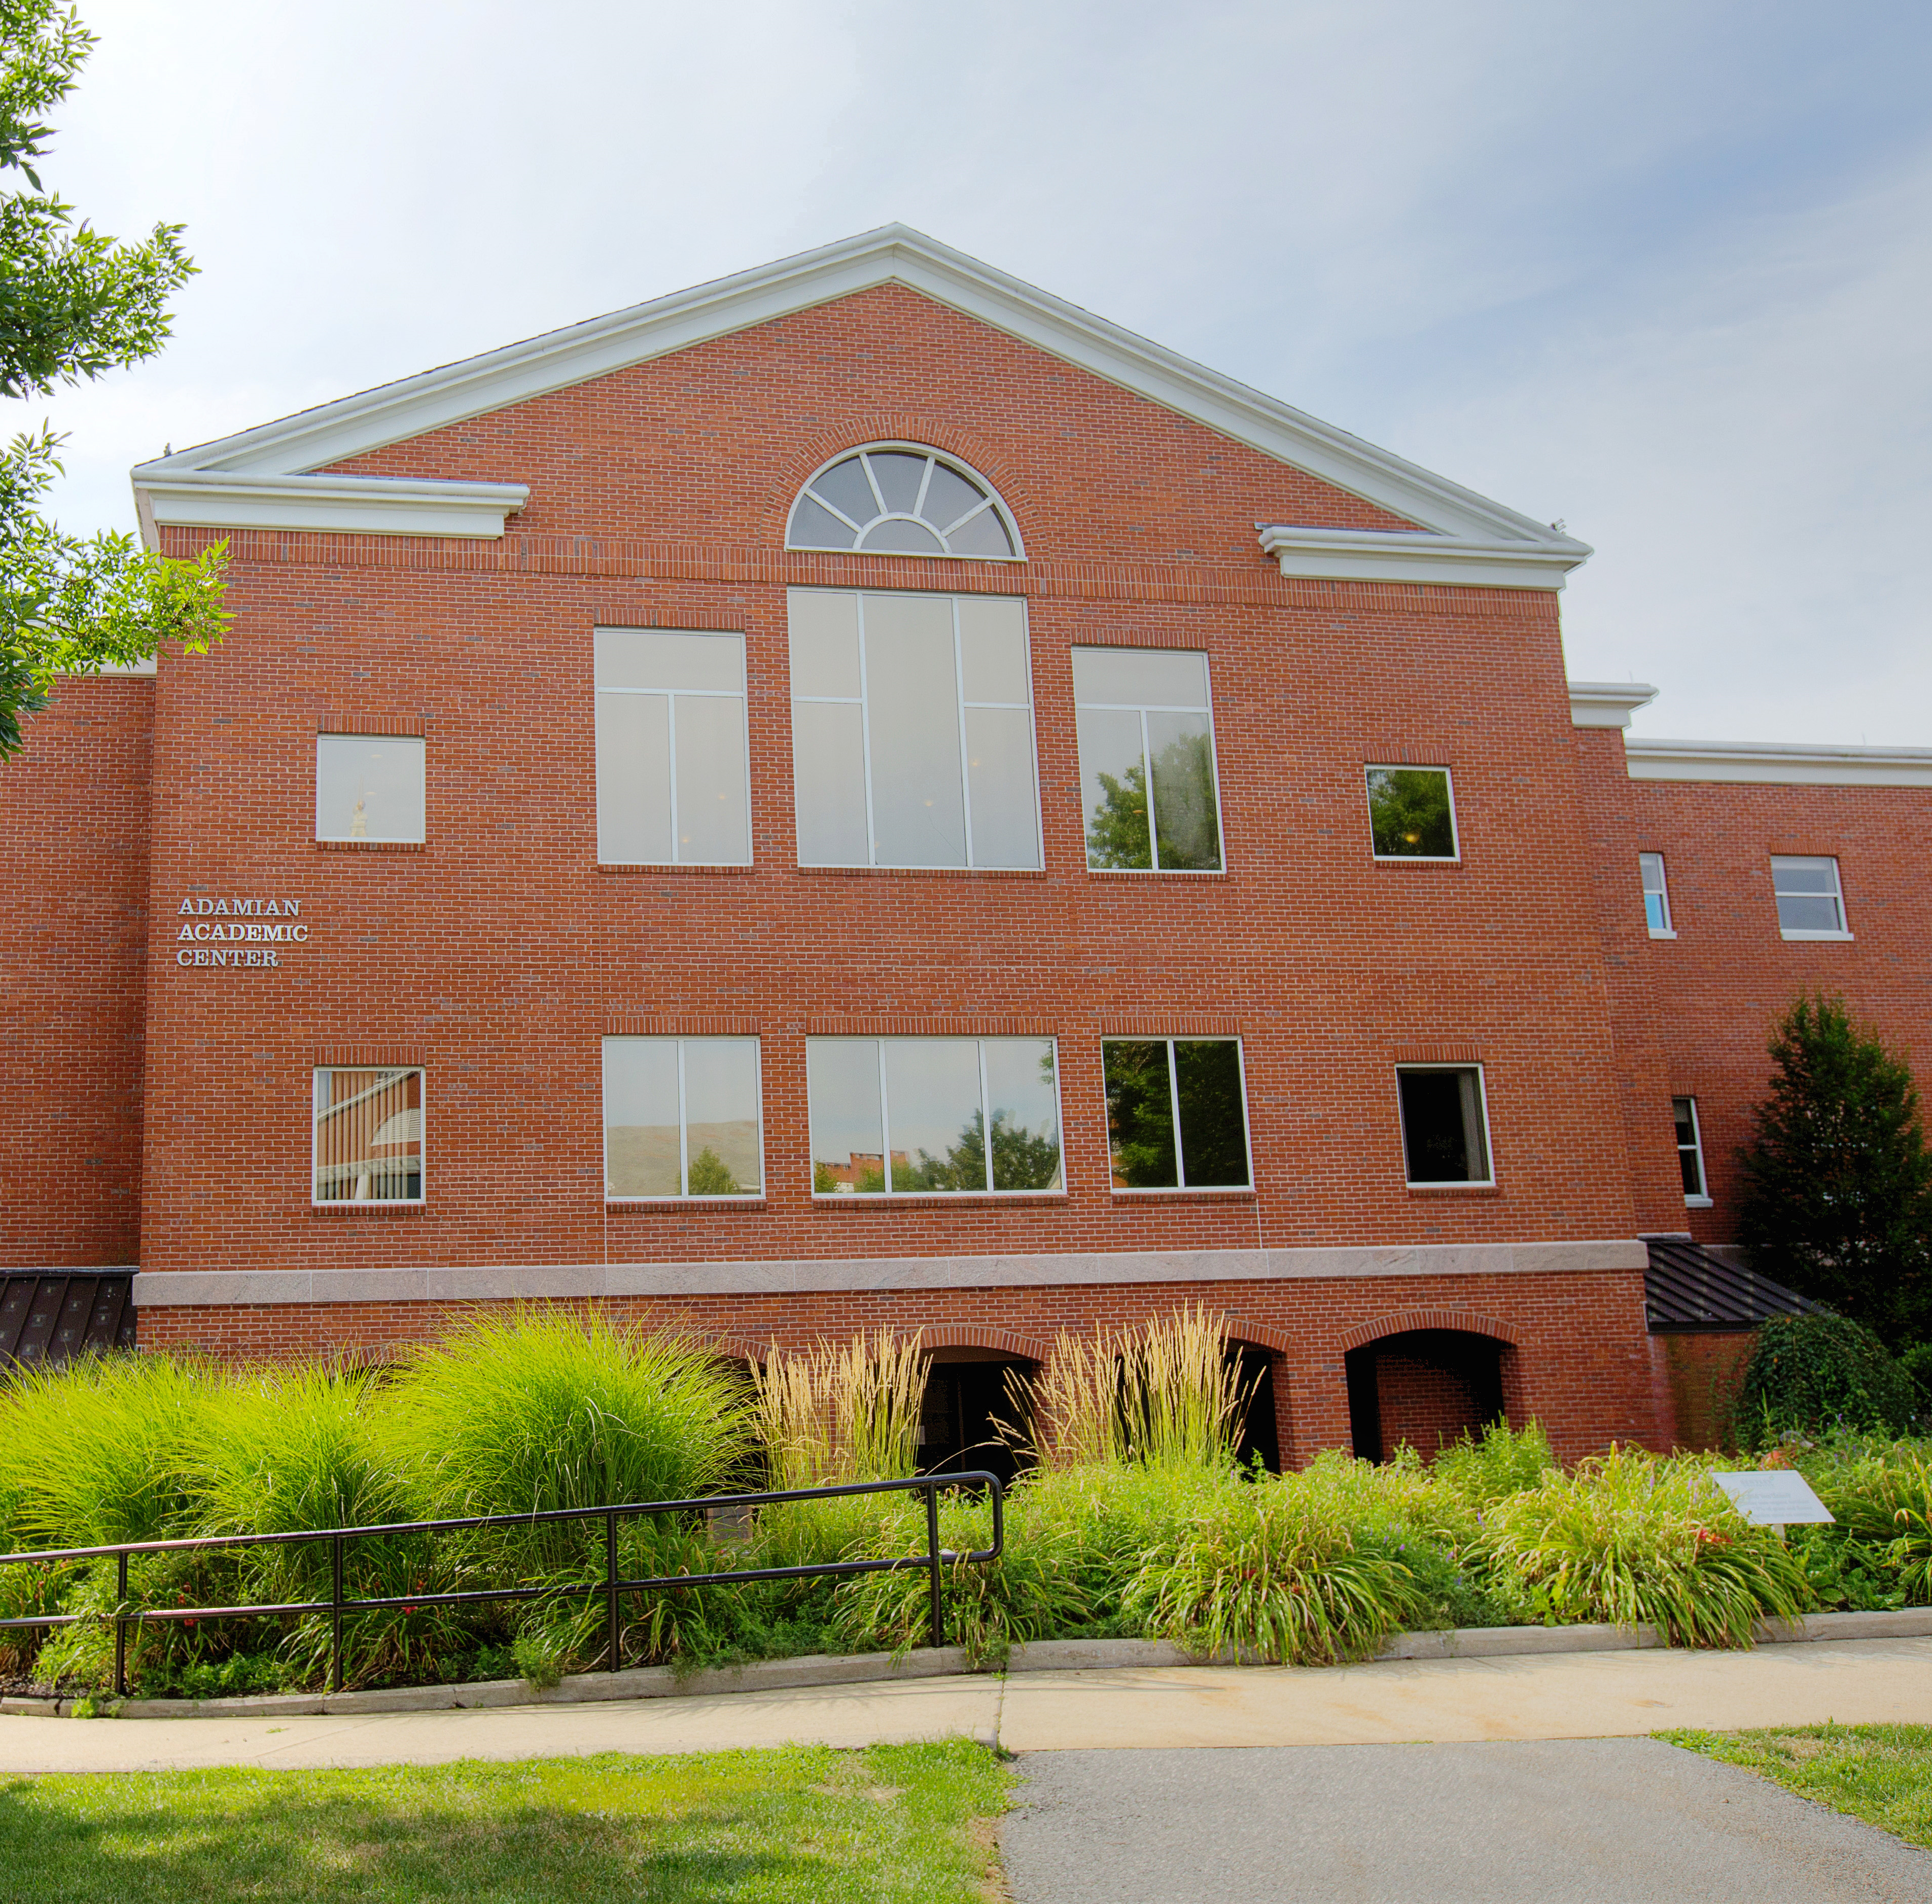 The front of the Adamian Academic Center